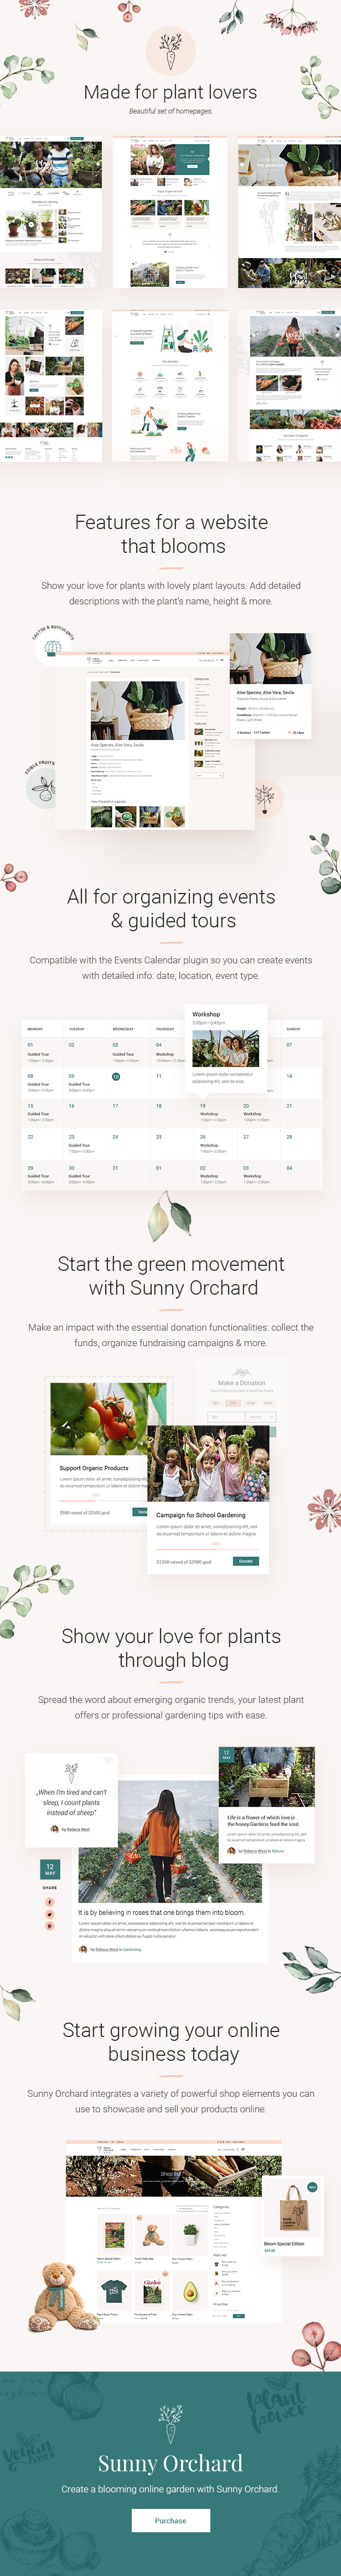 SunnyOrchard - Landscaping and Gardening Theme - 1 SunnyOrchard - Landscaping and Gardening Theme Nulled Free Download SunnyOrchard – Landscaping and Gardening Theme Nulled Free Download 01